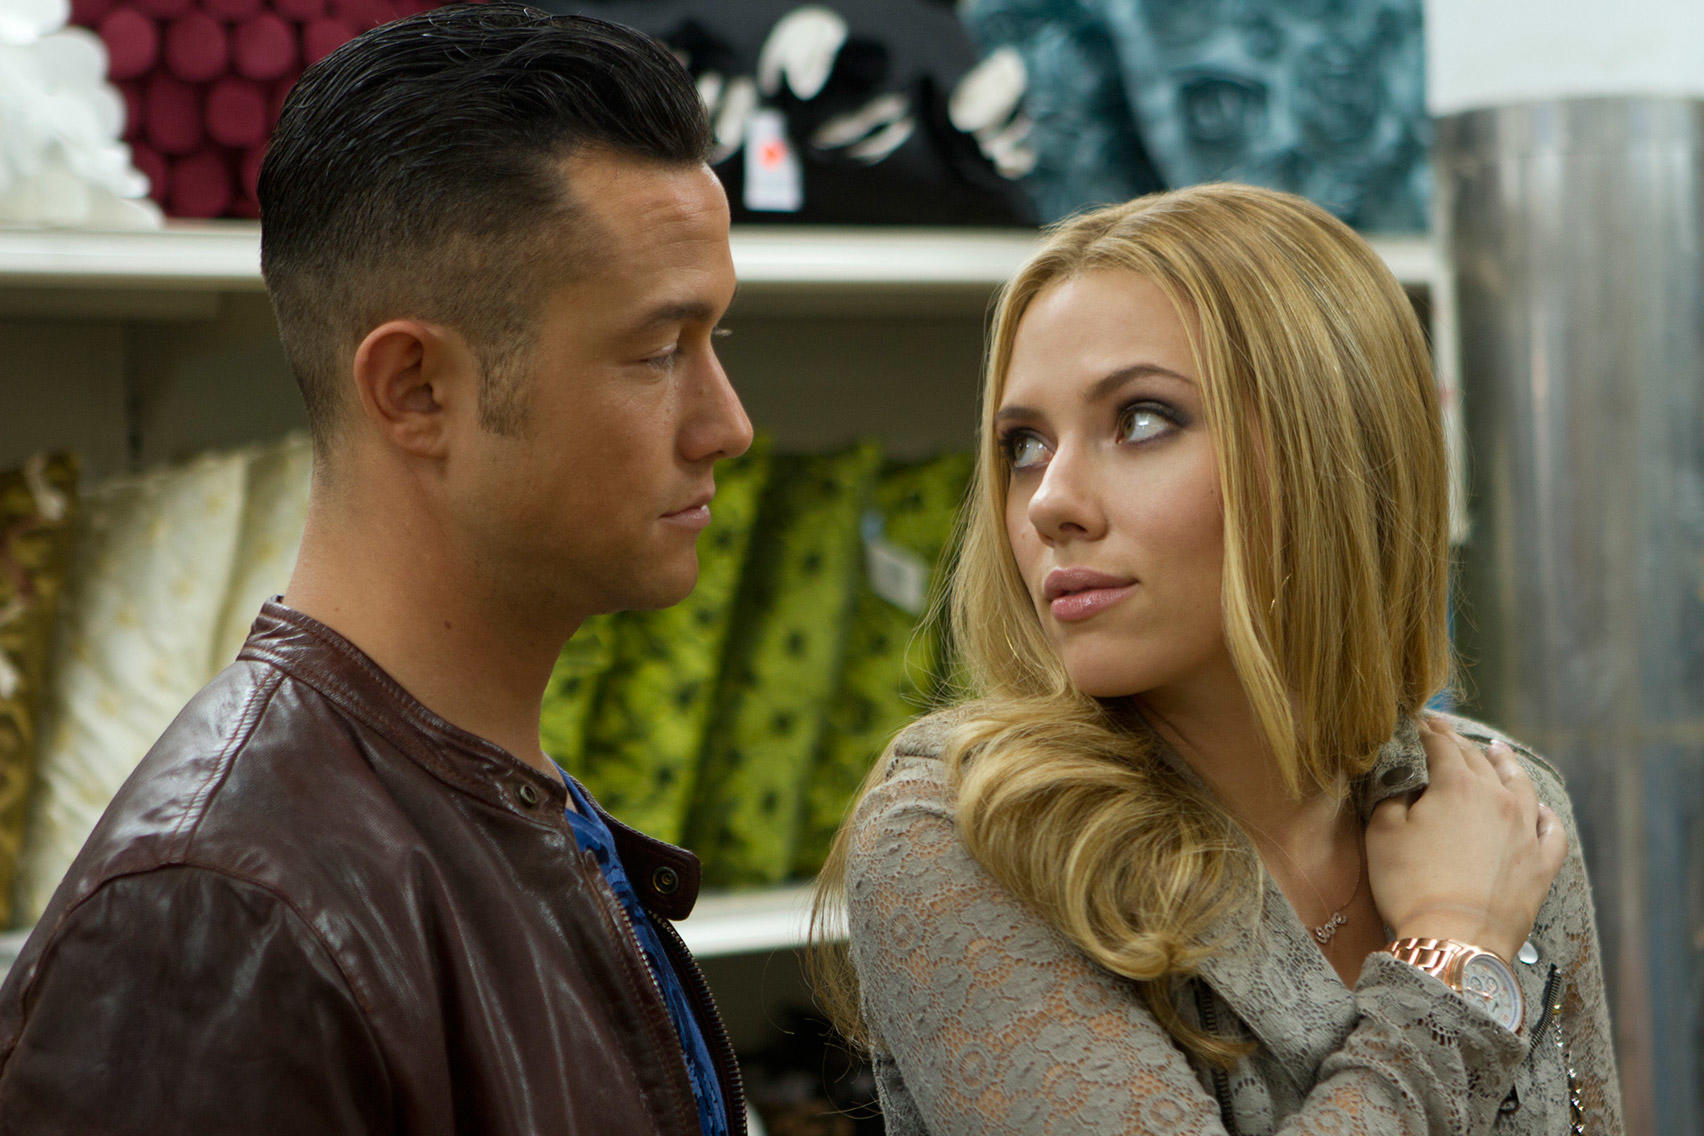 Joseph Gordon-Levitt and Scarlett Johansson in